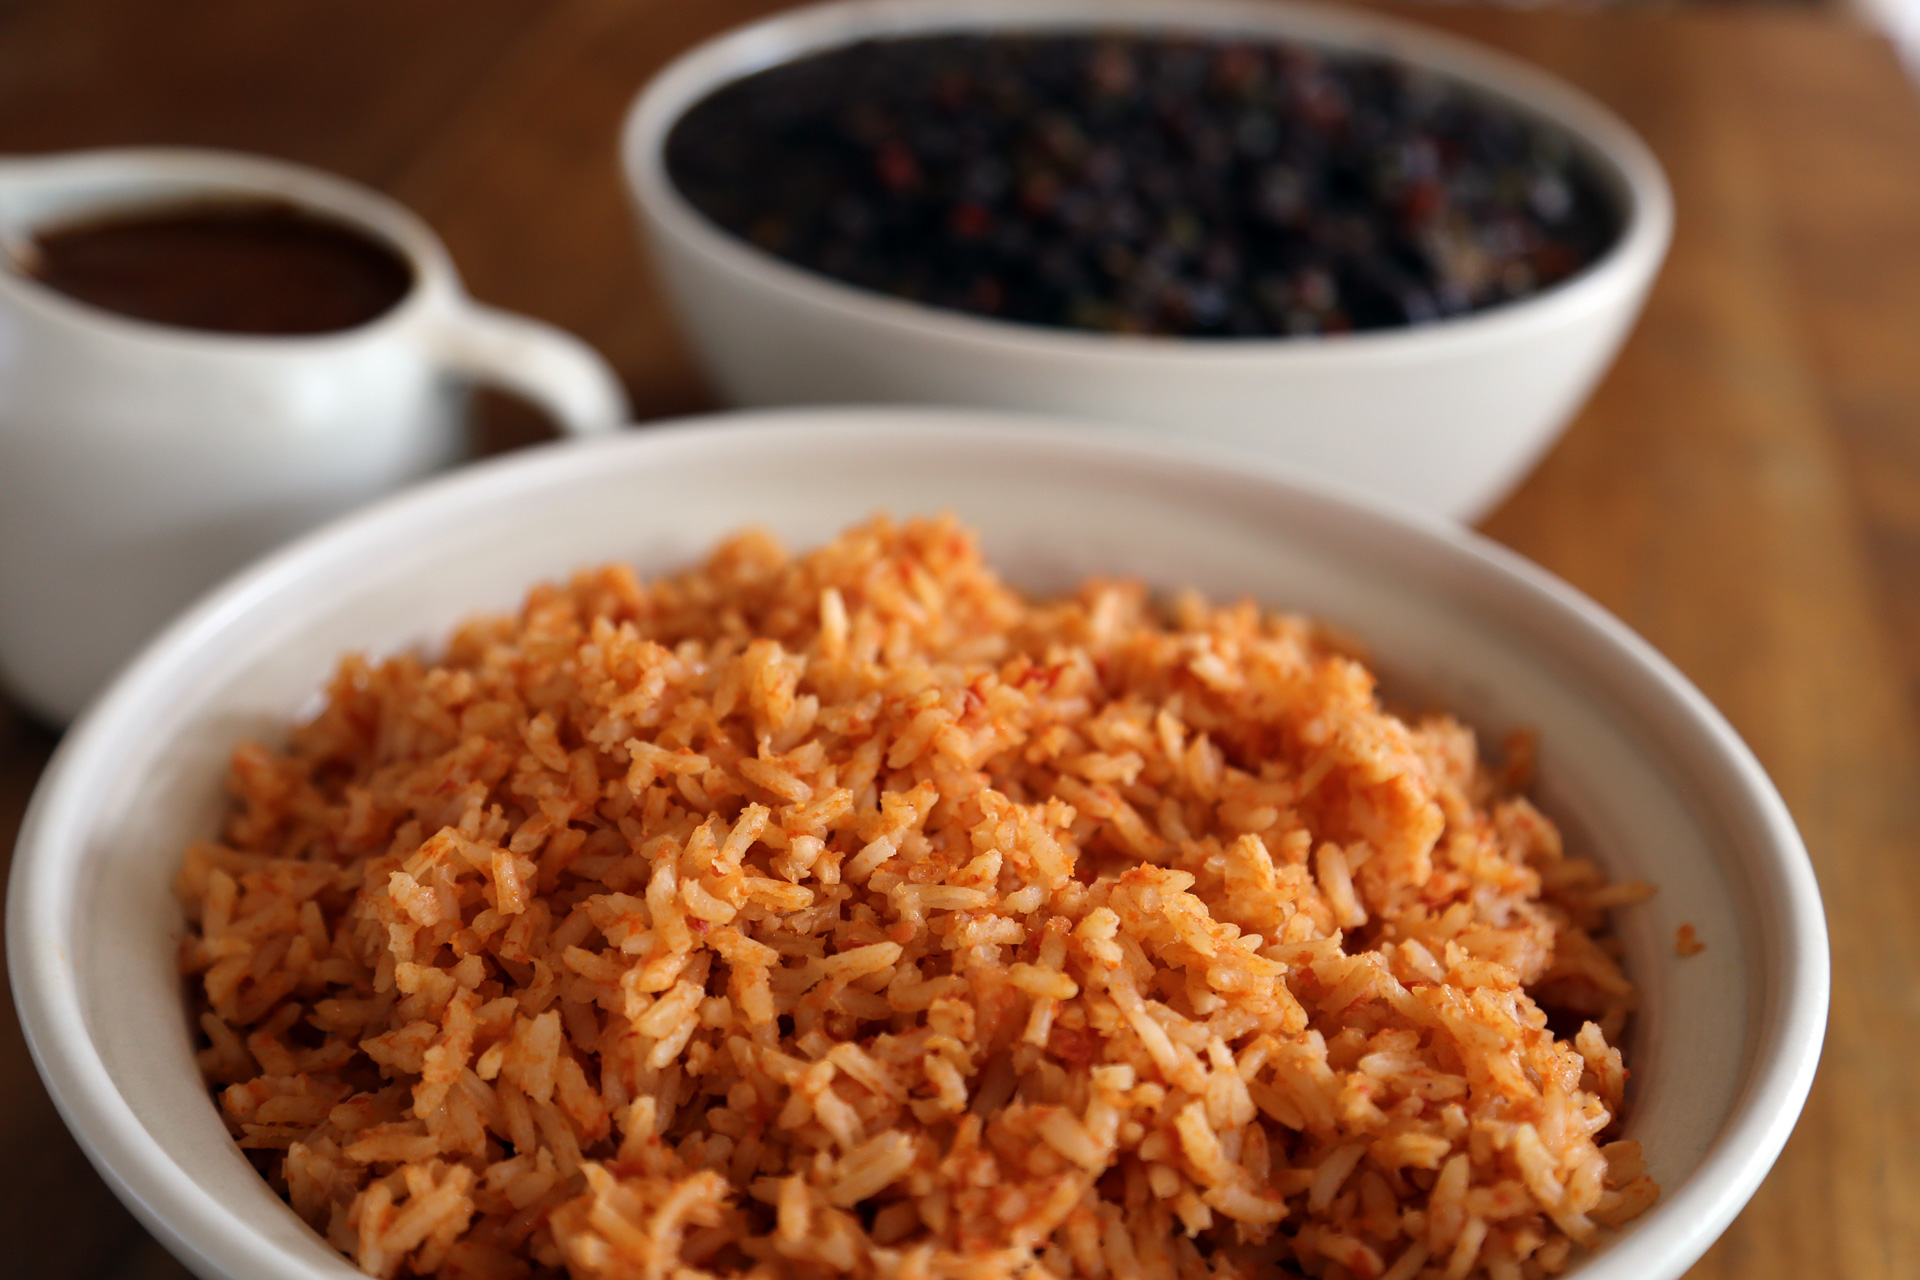 Fluff the rice with a fork, then serve with Savory Black Beans and Mole Gravy.